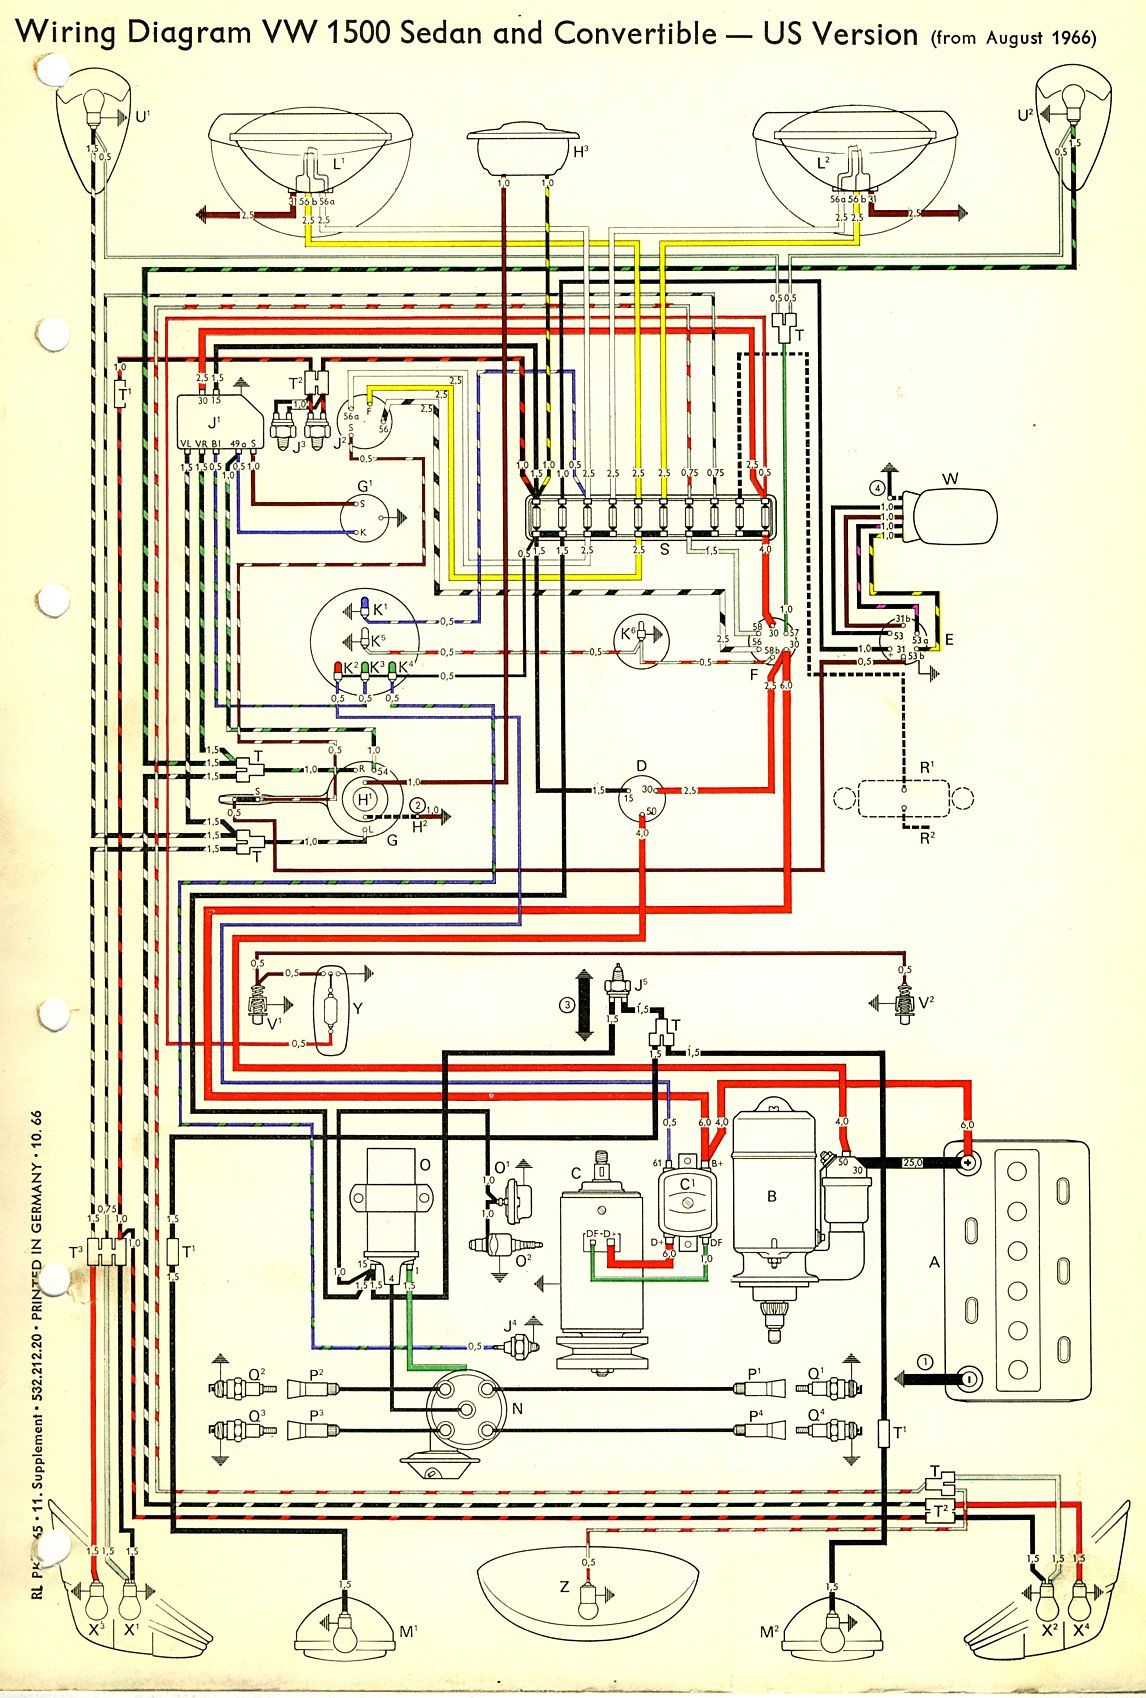 1adf990c0efb617c789fdd21338448b0 1967 beetle wiring diagram (usa) thegoldenbug com best 1967 vw wiring diagram for 71 super beetle at soozxer.org